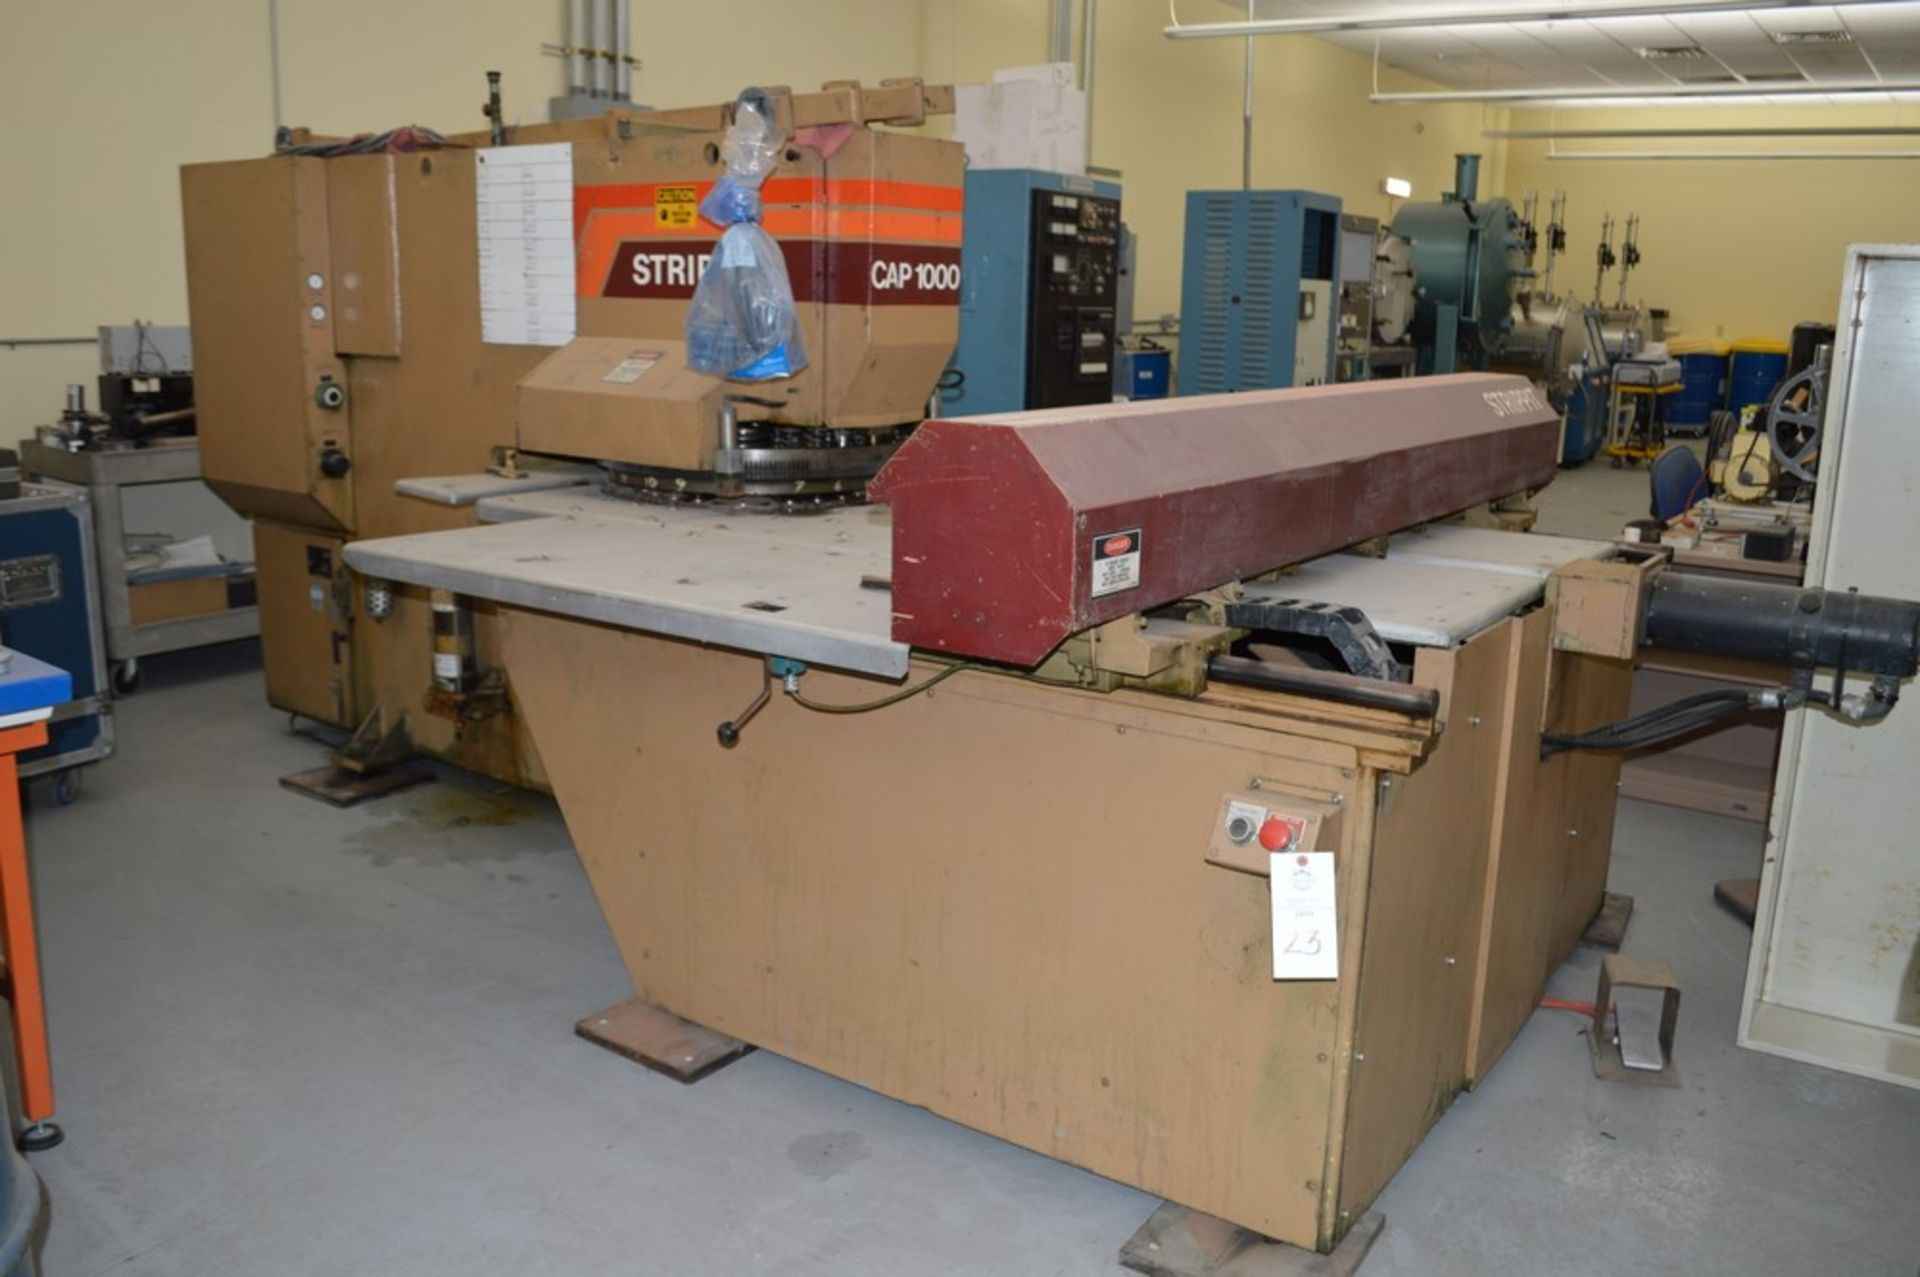 1985 Del Arco Strippit 1000 lbs punch, with auxilliary transfer table, 20 stations, blue 4 leg - Image 3 of 15